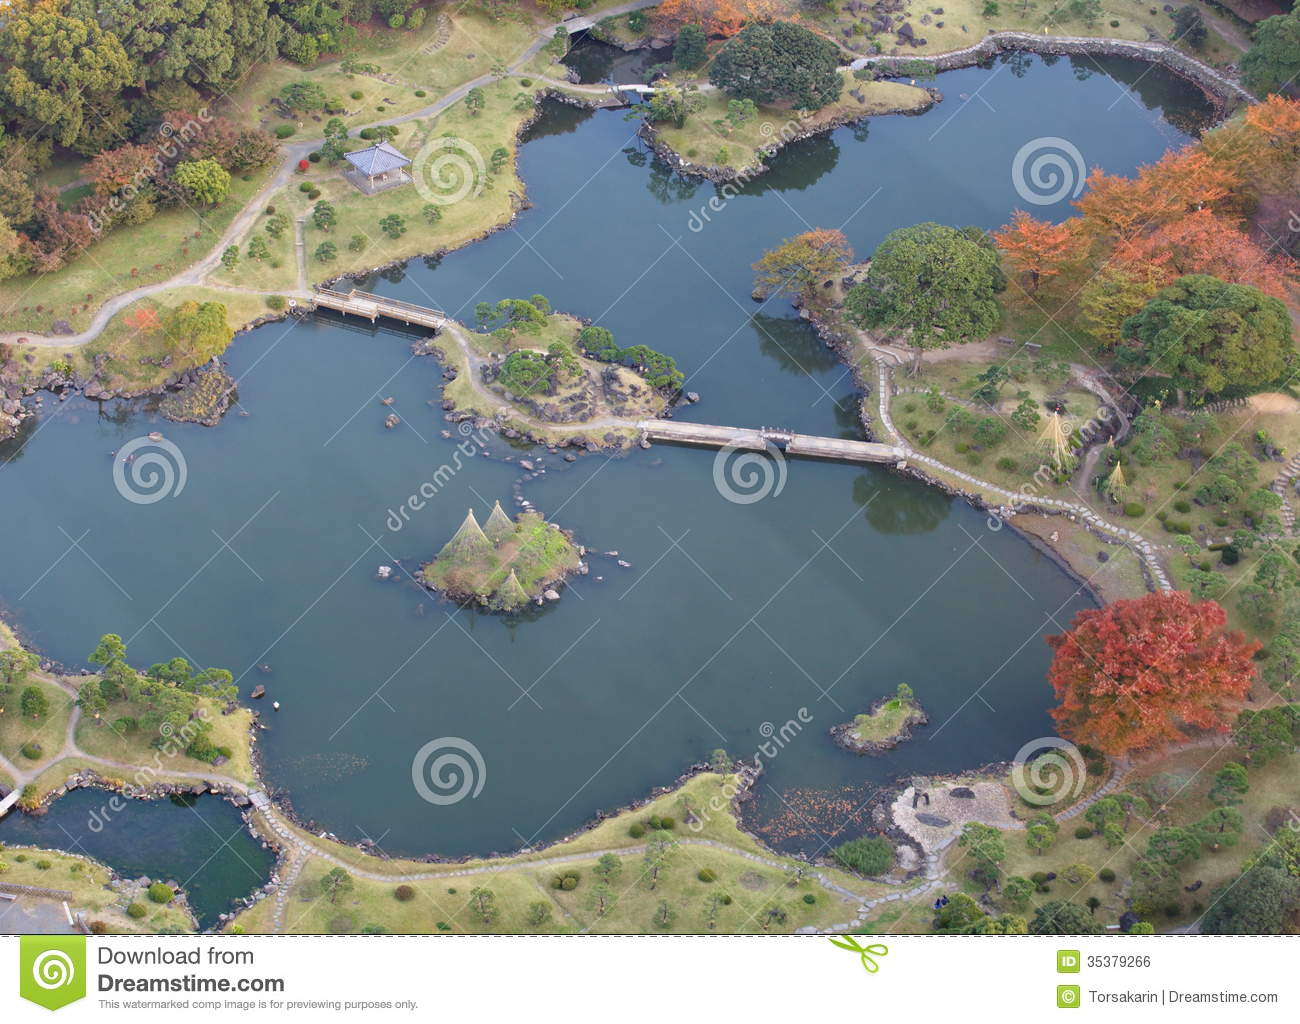 Japanese zen gardens top view - Japanese Zen Gardens Top View Garden Japanese Rhododendron Relax Rock Download